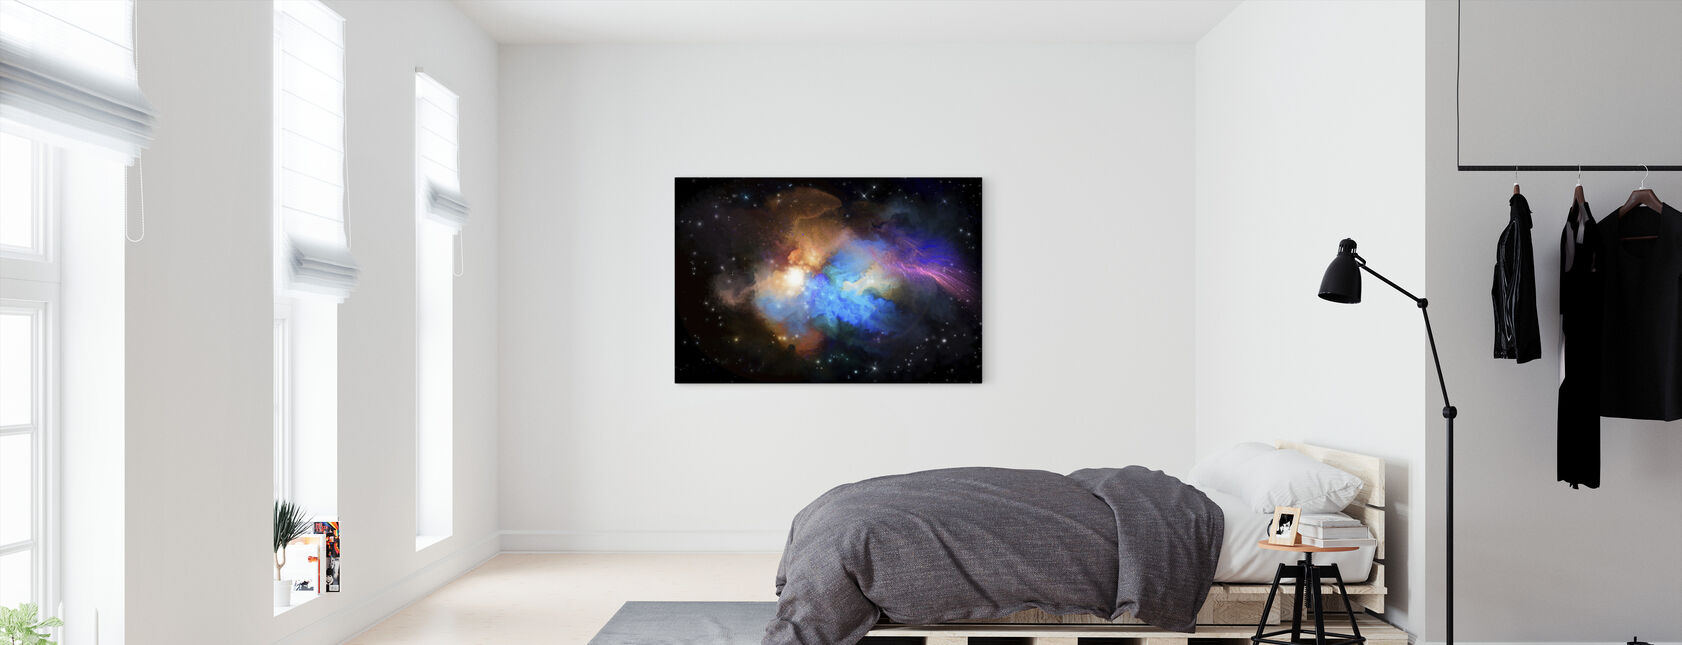 Multicolored Nebula - Canvas print - Bedroom